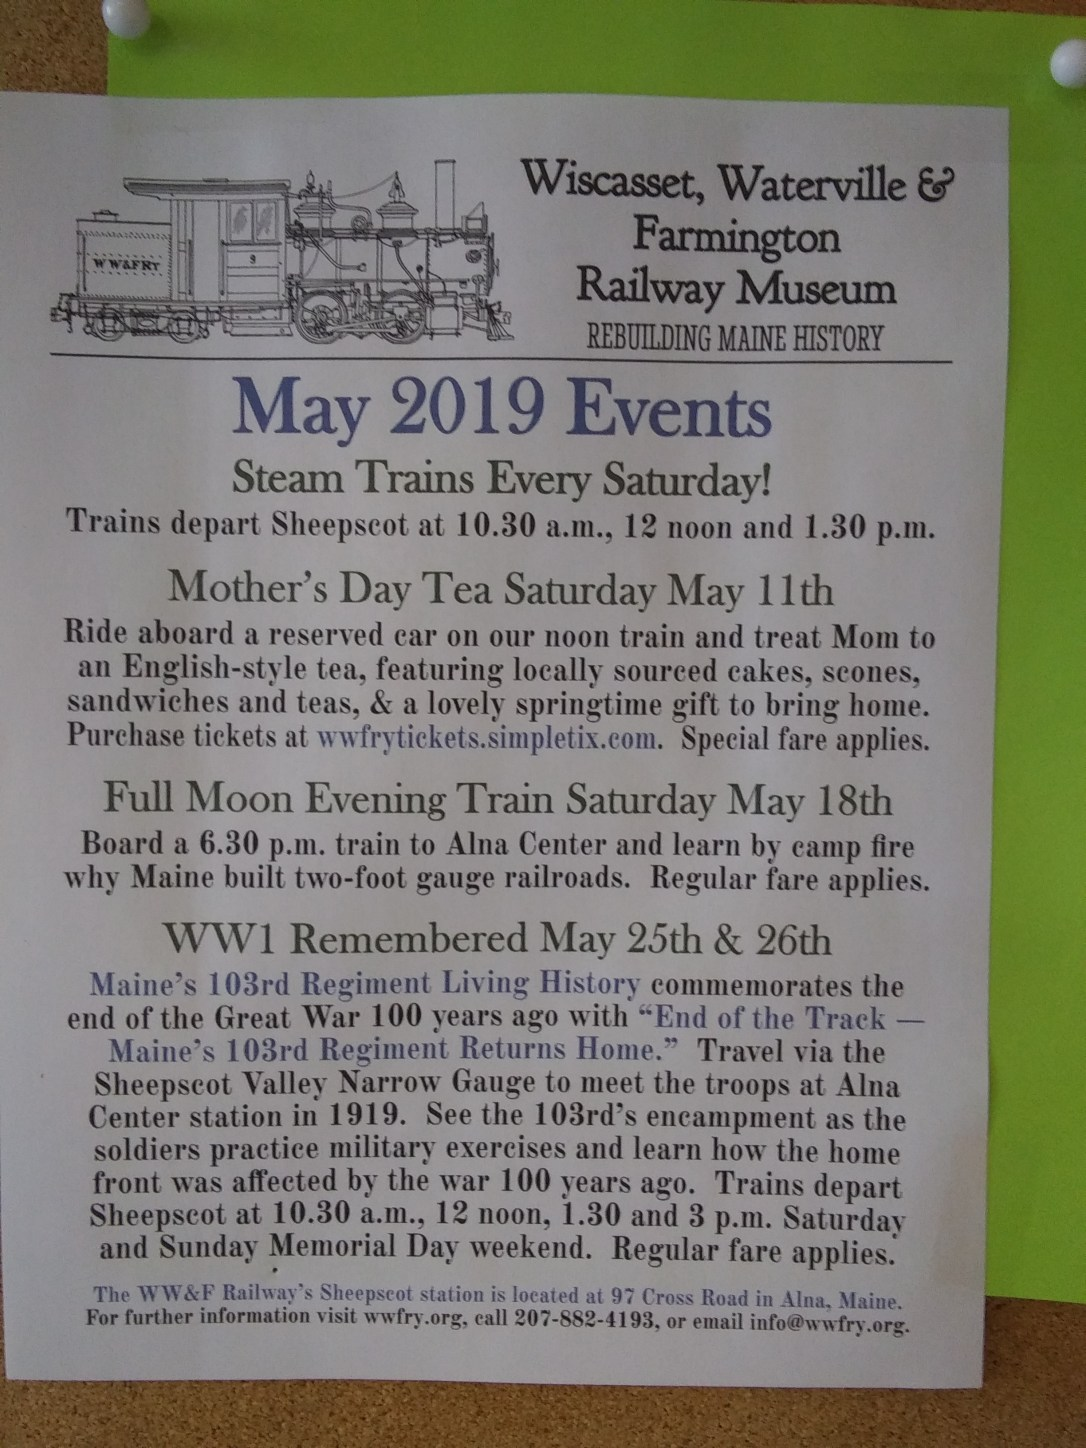 May activities at Wiscasset, Waterville and Farmington Railway. Know a train lover, check these out.